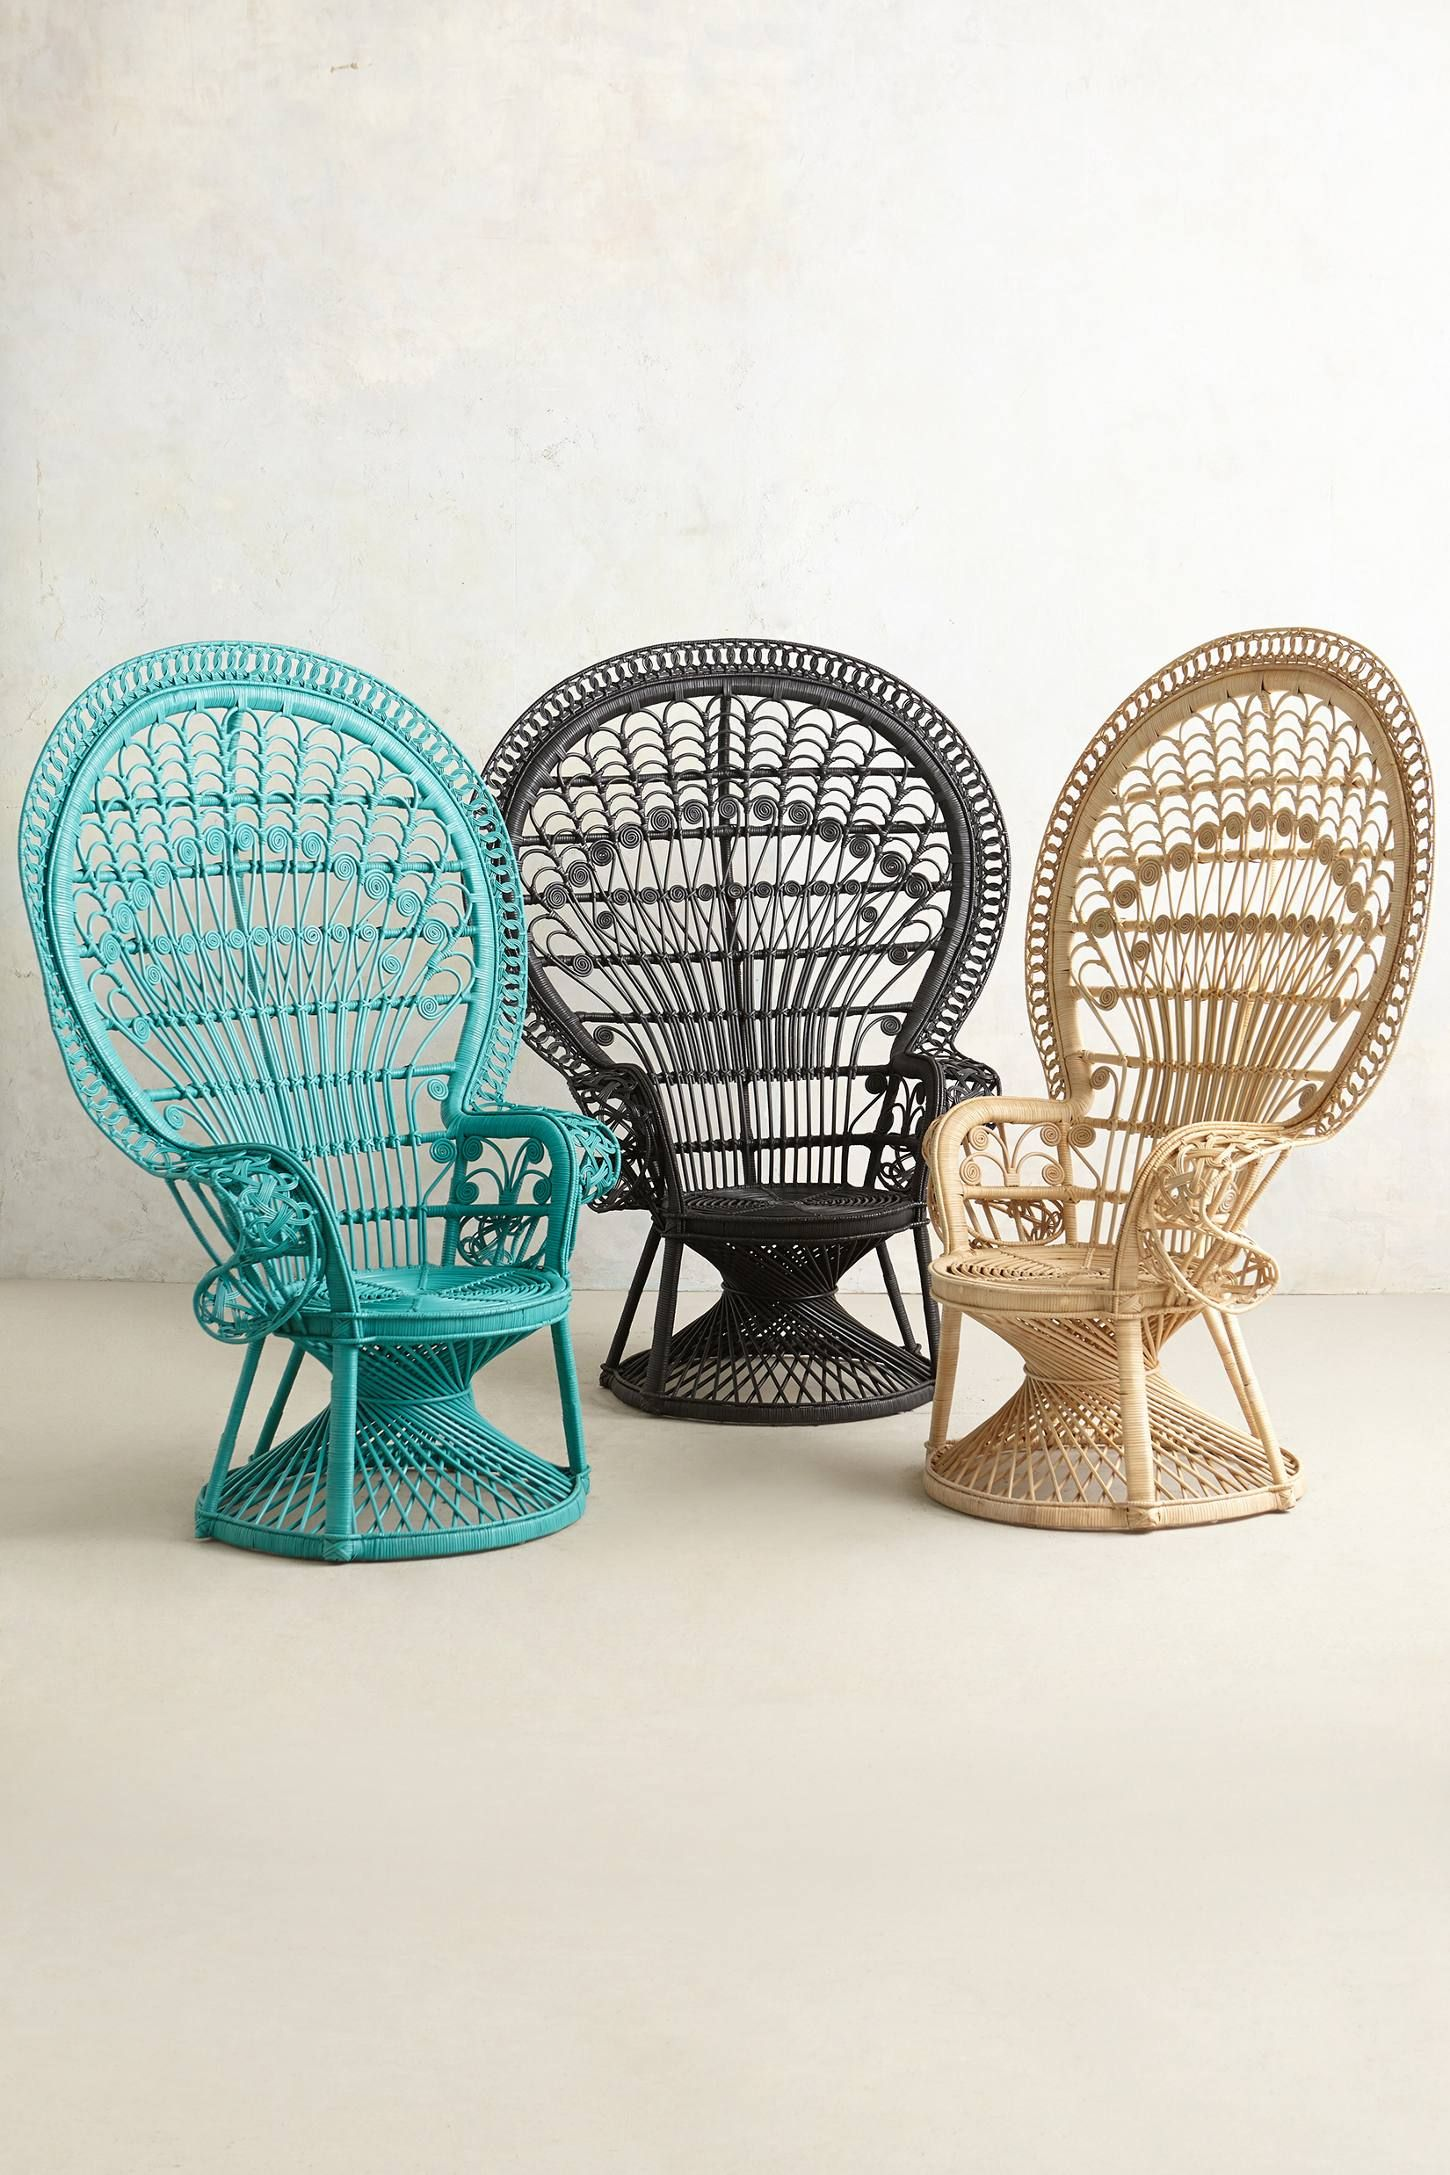 Reina Chair | Mimbre, Muebles mimbre y Sillas